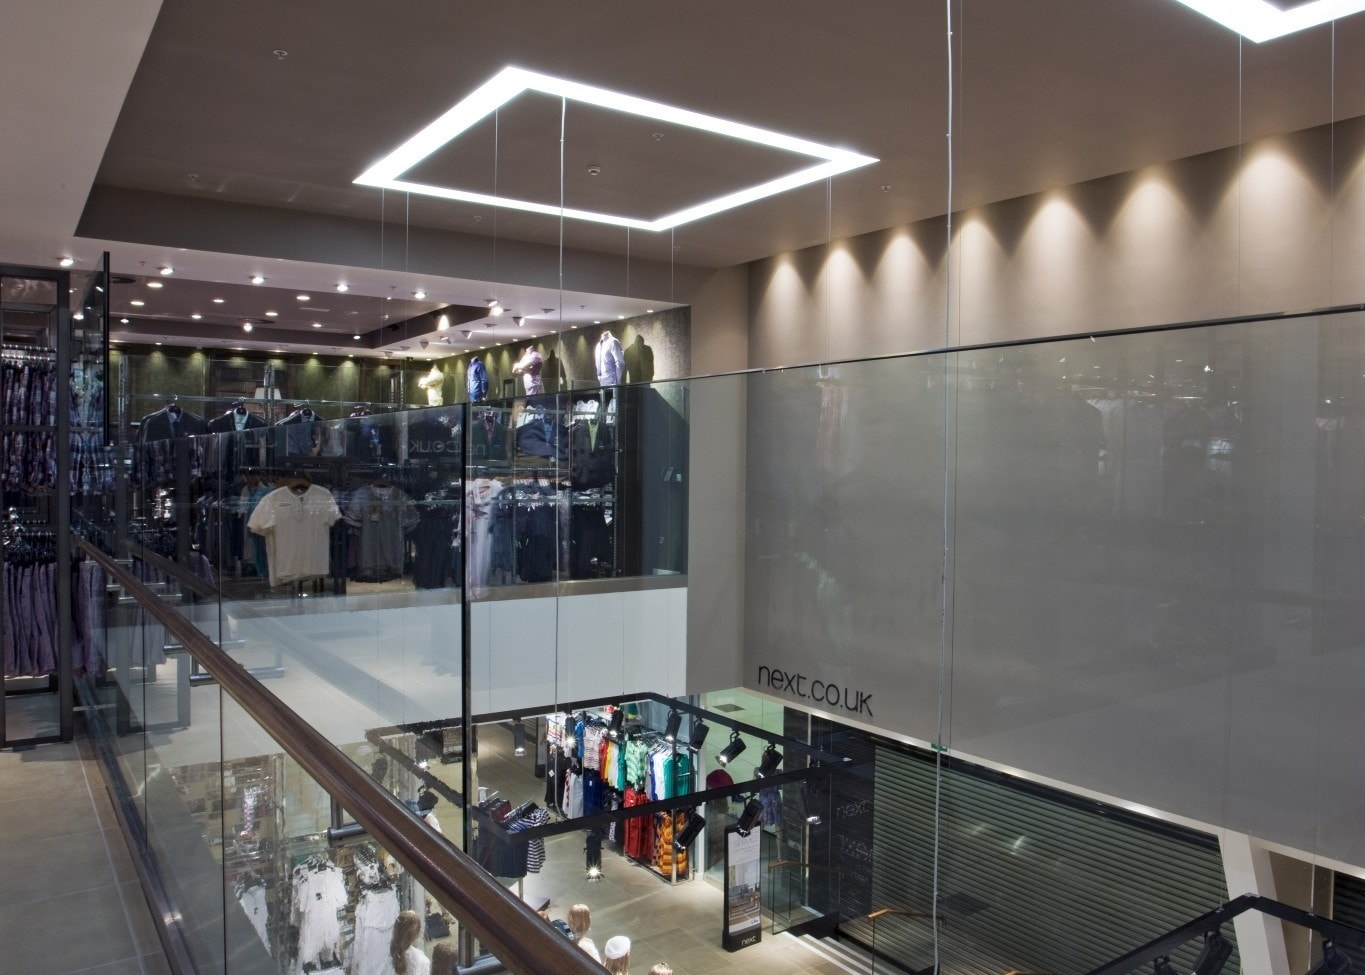 retail lighting design: Next upstairs view of ground floor